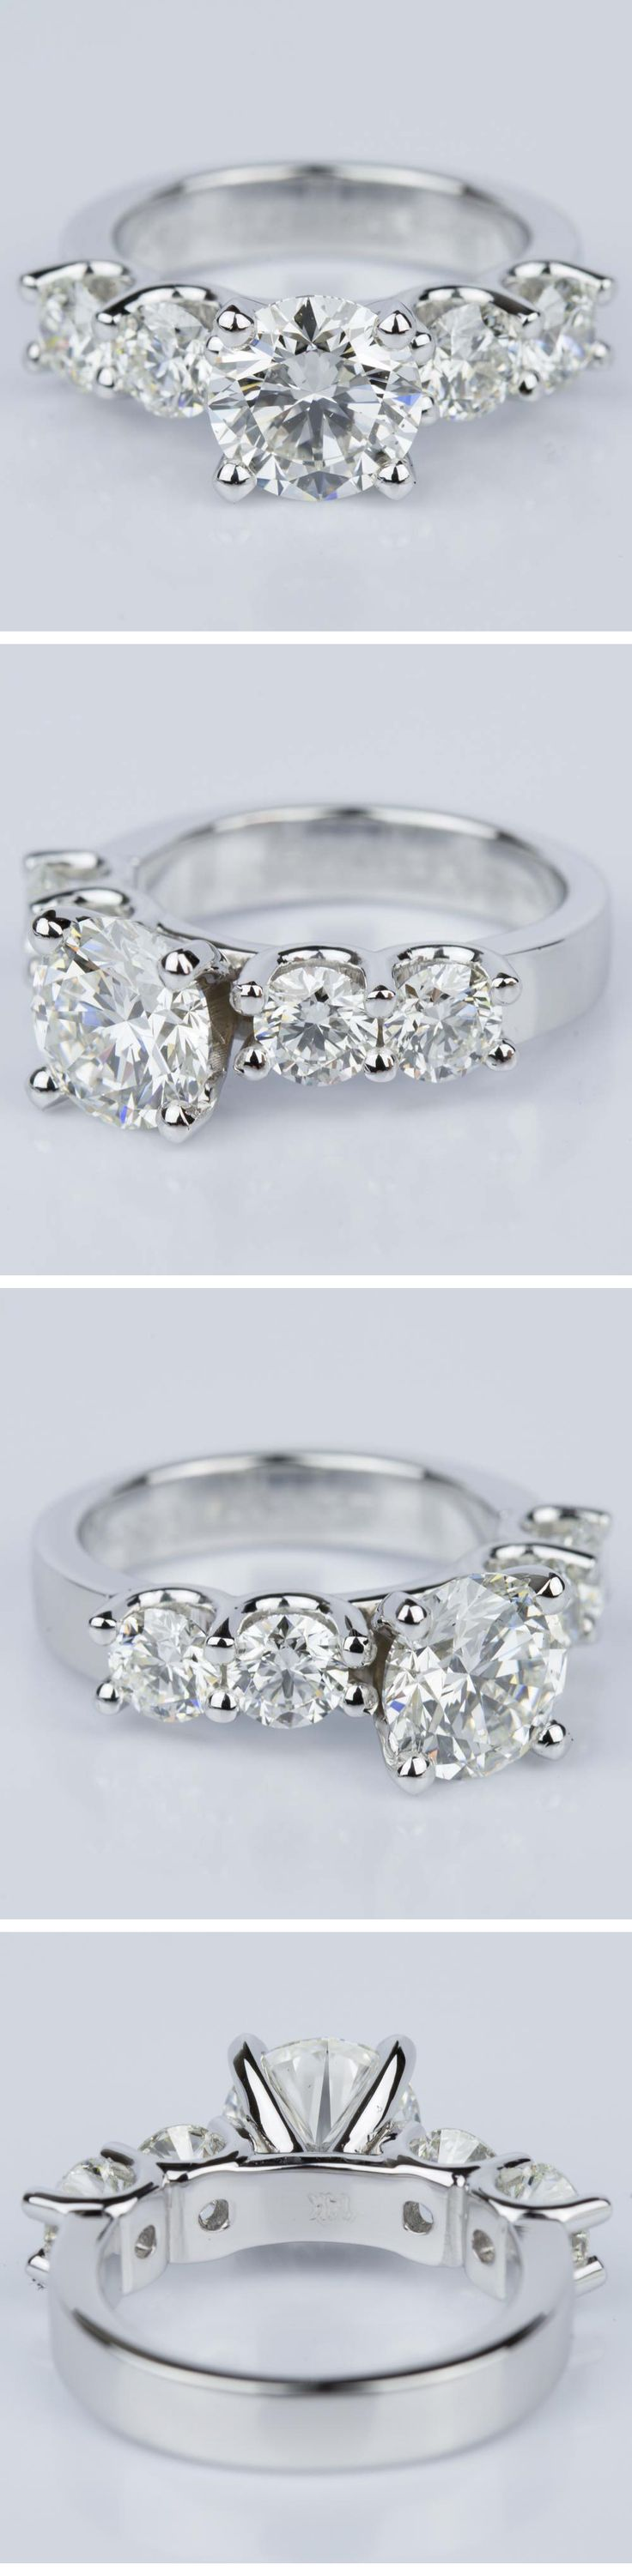 A beautiful Custom Five Diamond Engagement Ring in White Gold of to one lucky girl!